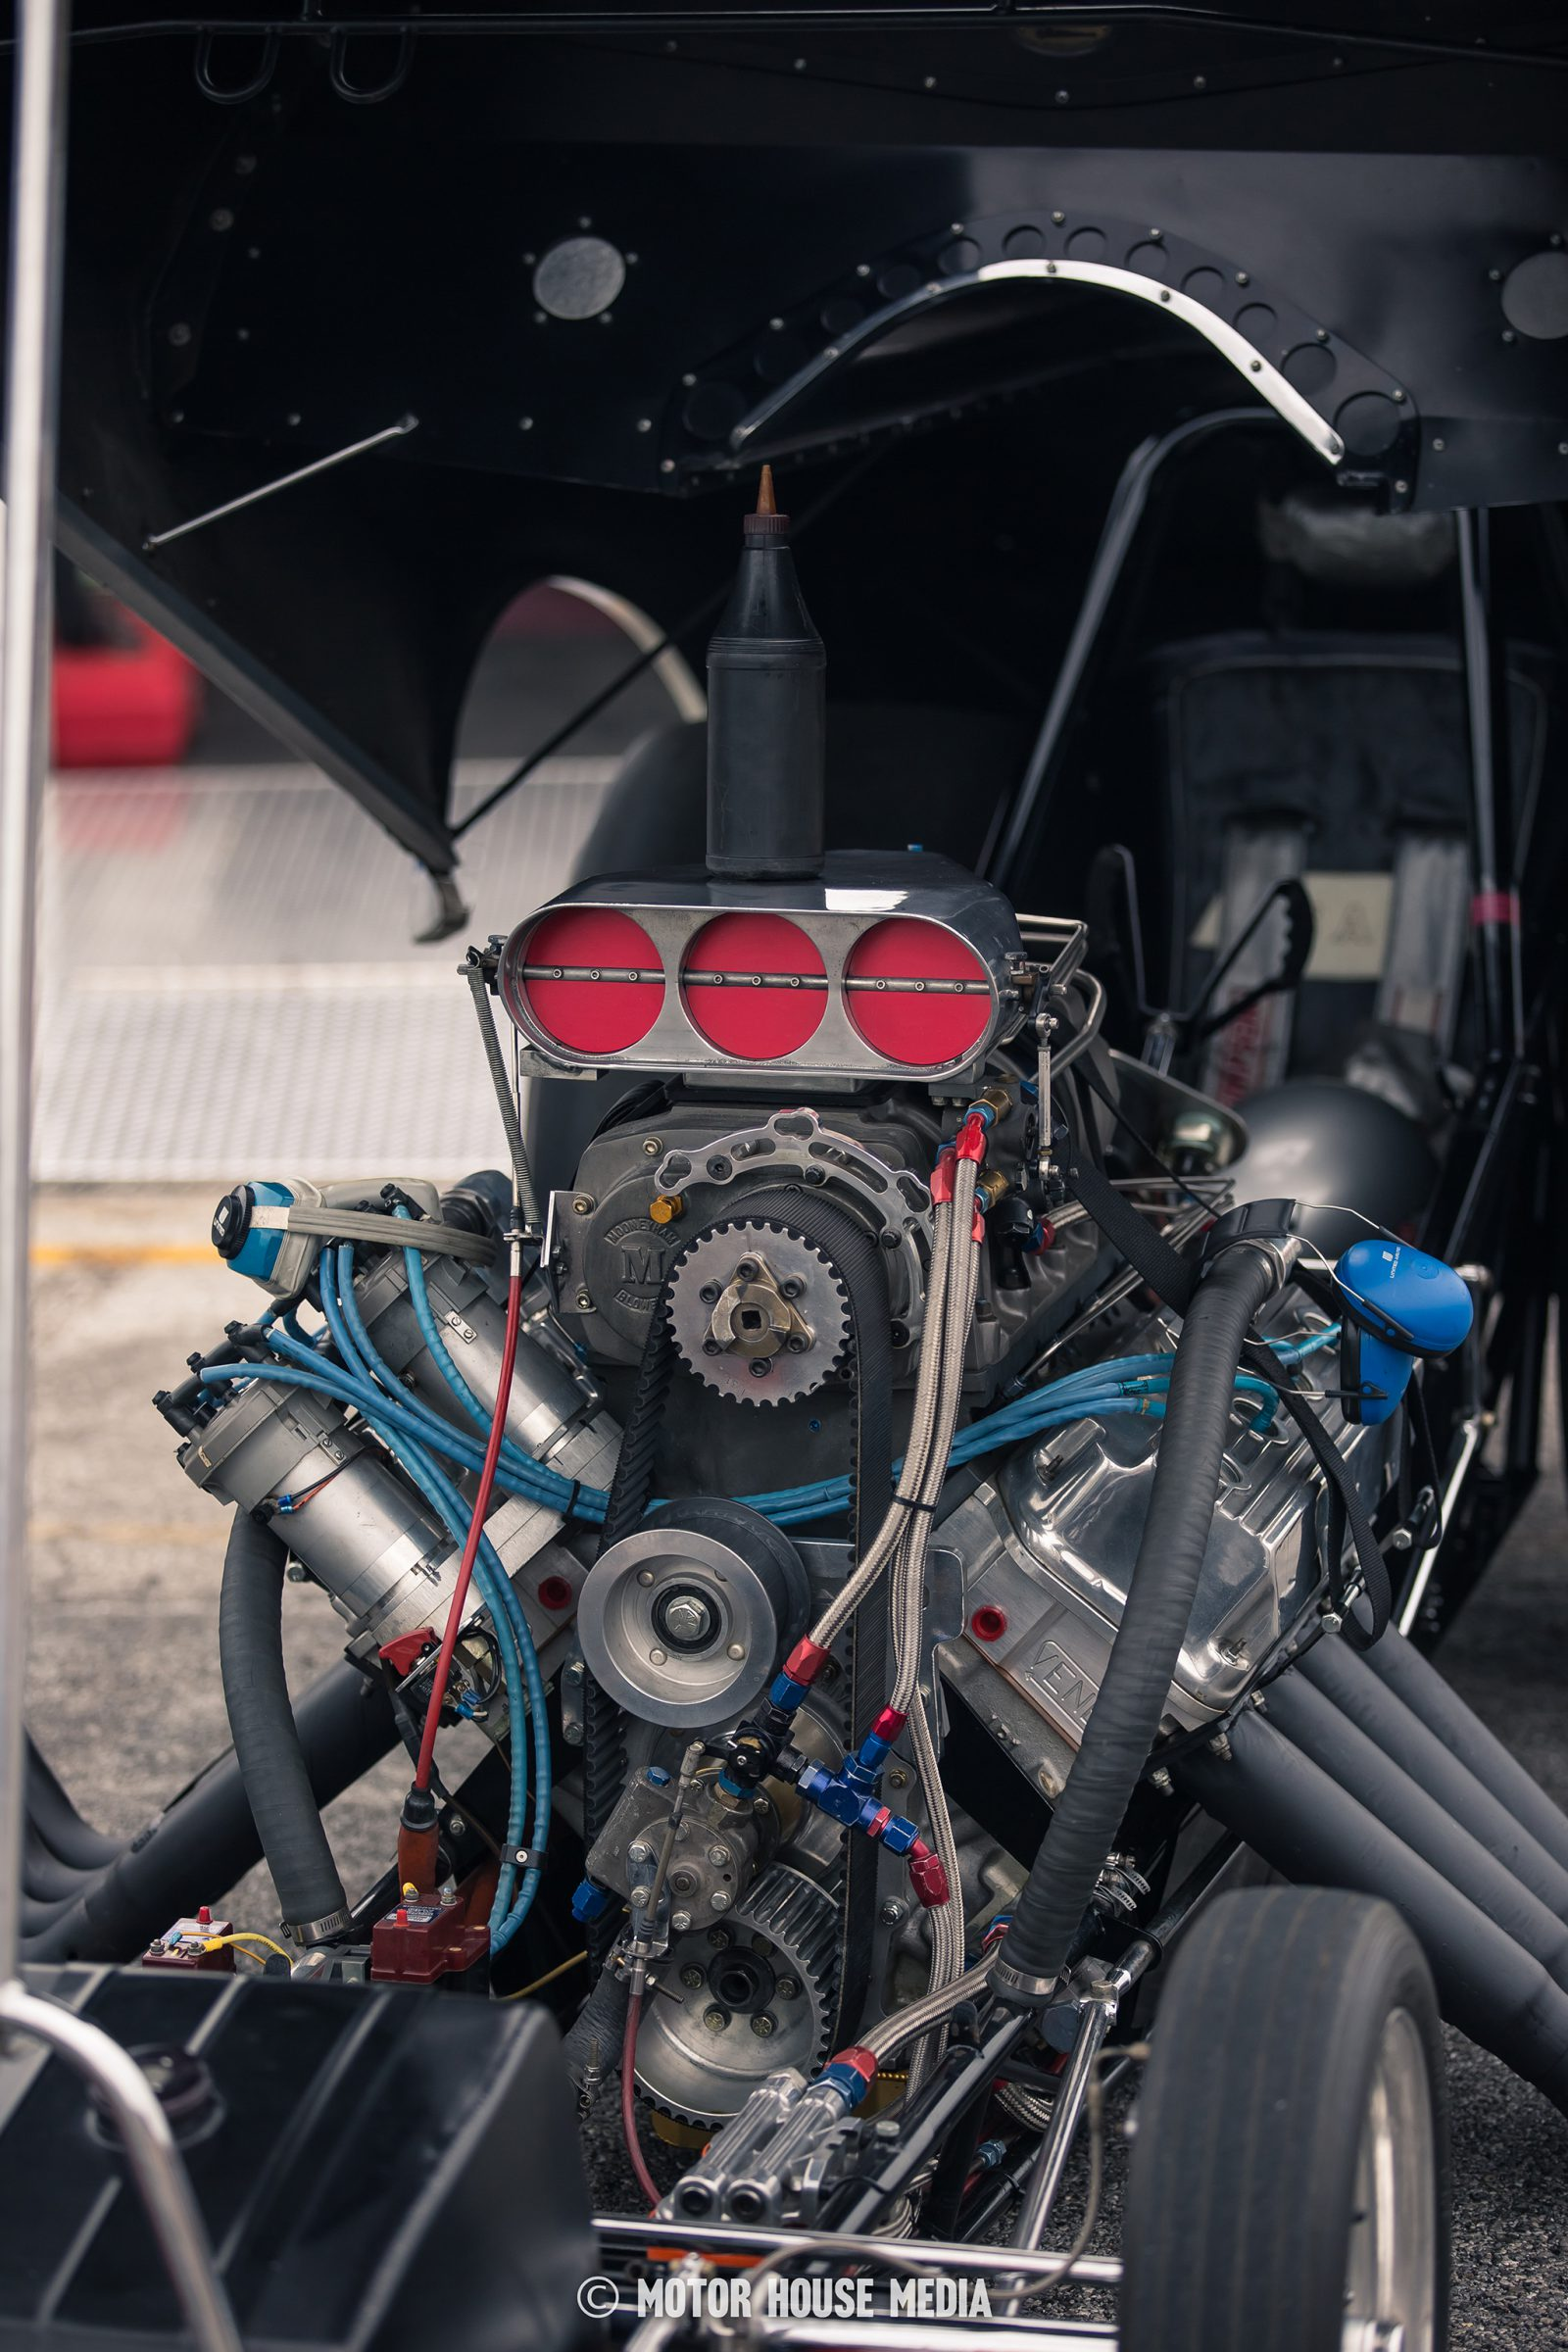 Bruce Larson's vintage Funny car Supercharger during Thunder Fest by Summit racing at the GoodGuys car show